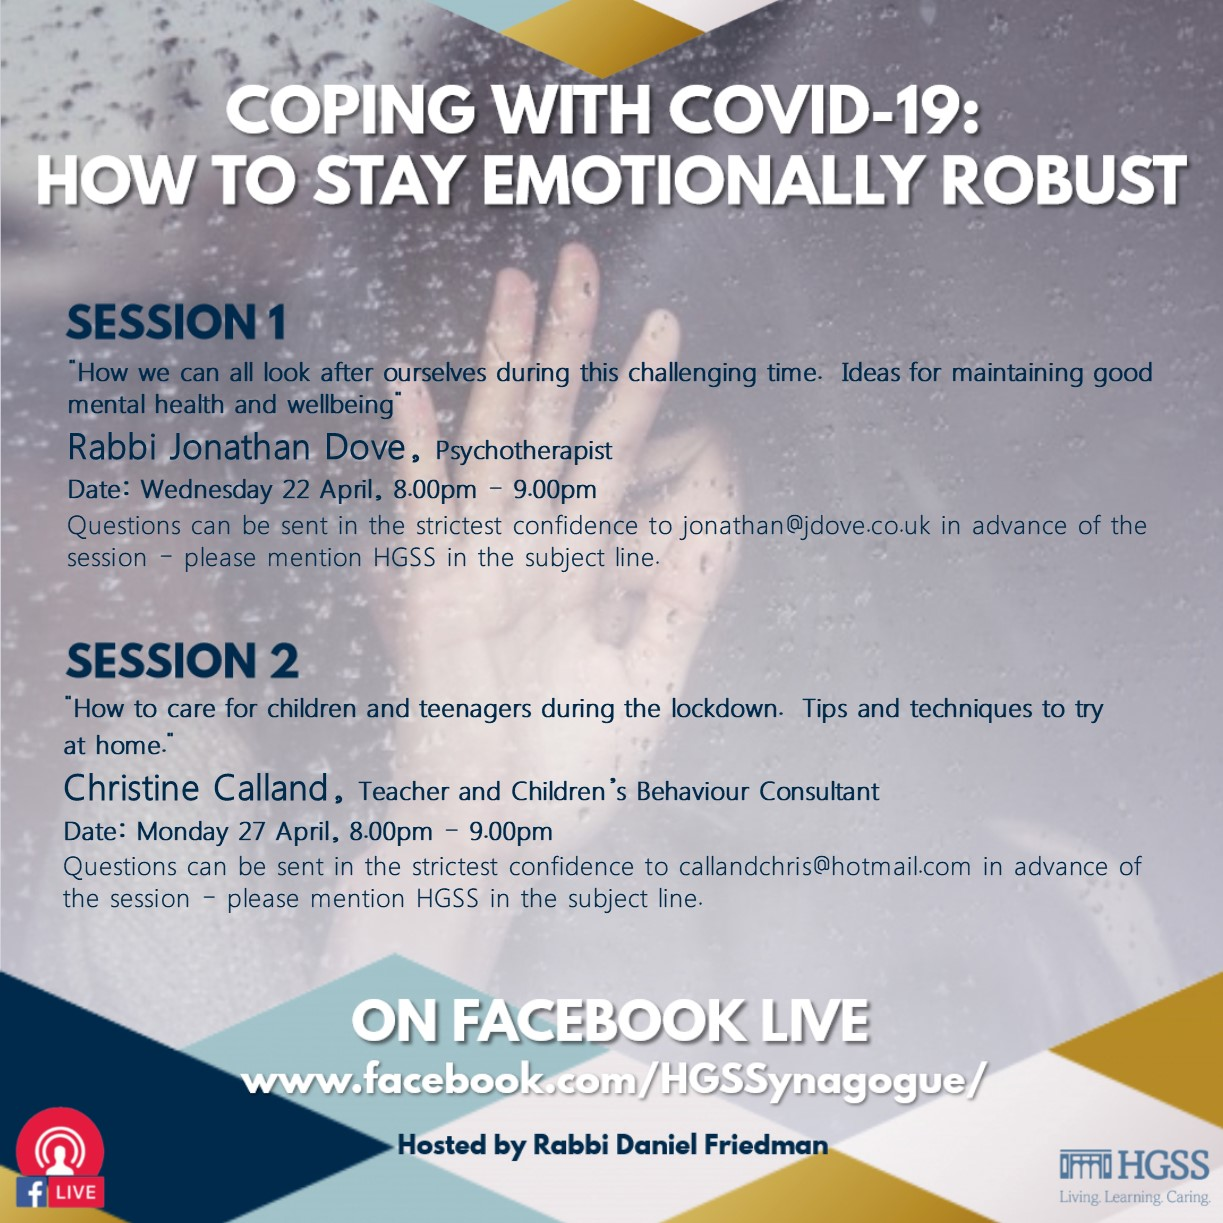 Coping with Covid-19: How to Stay Emotionally Robust @ Facebook Live